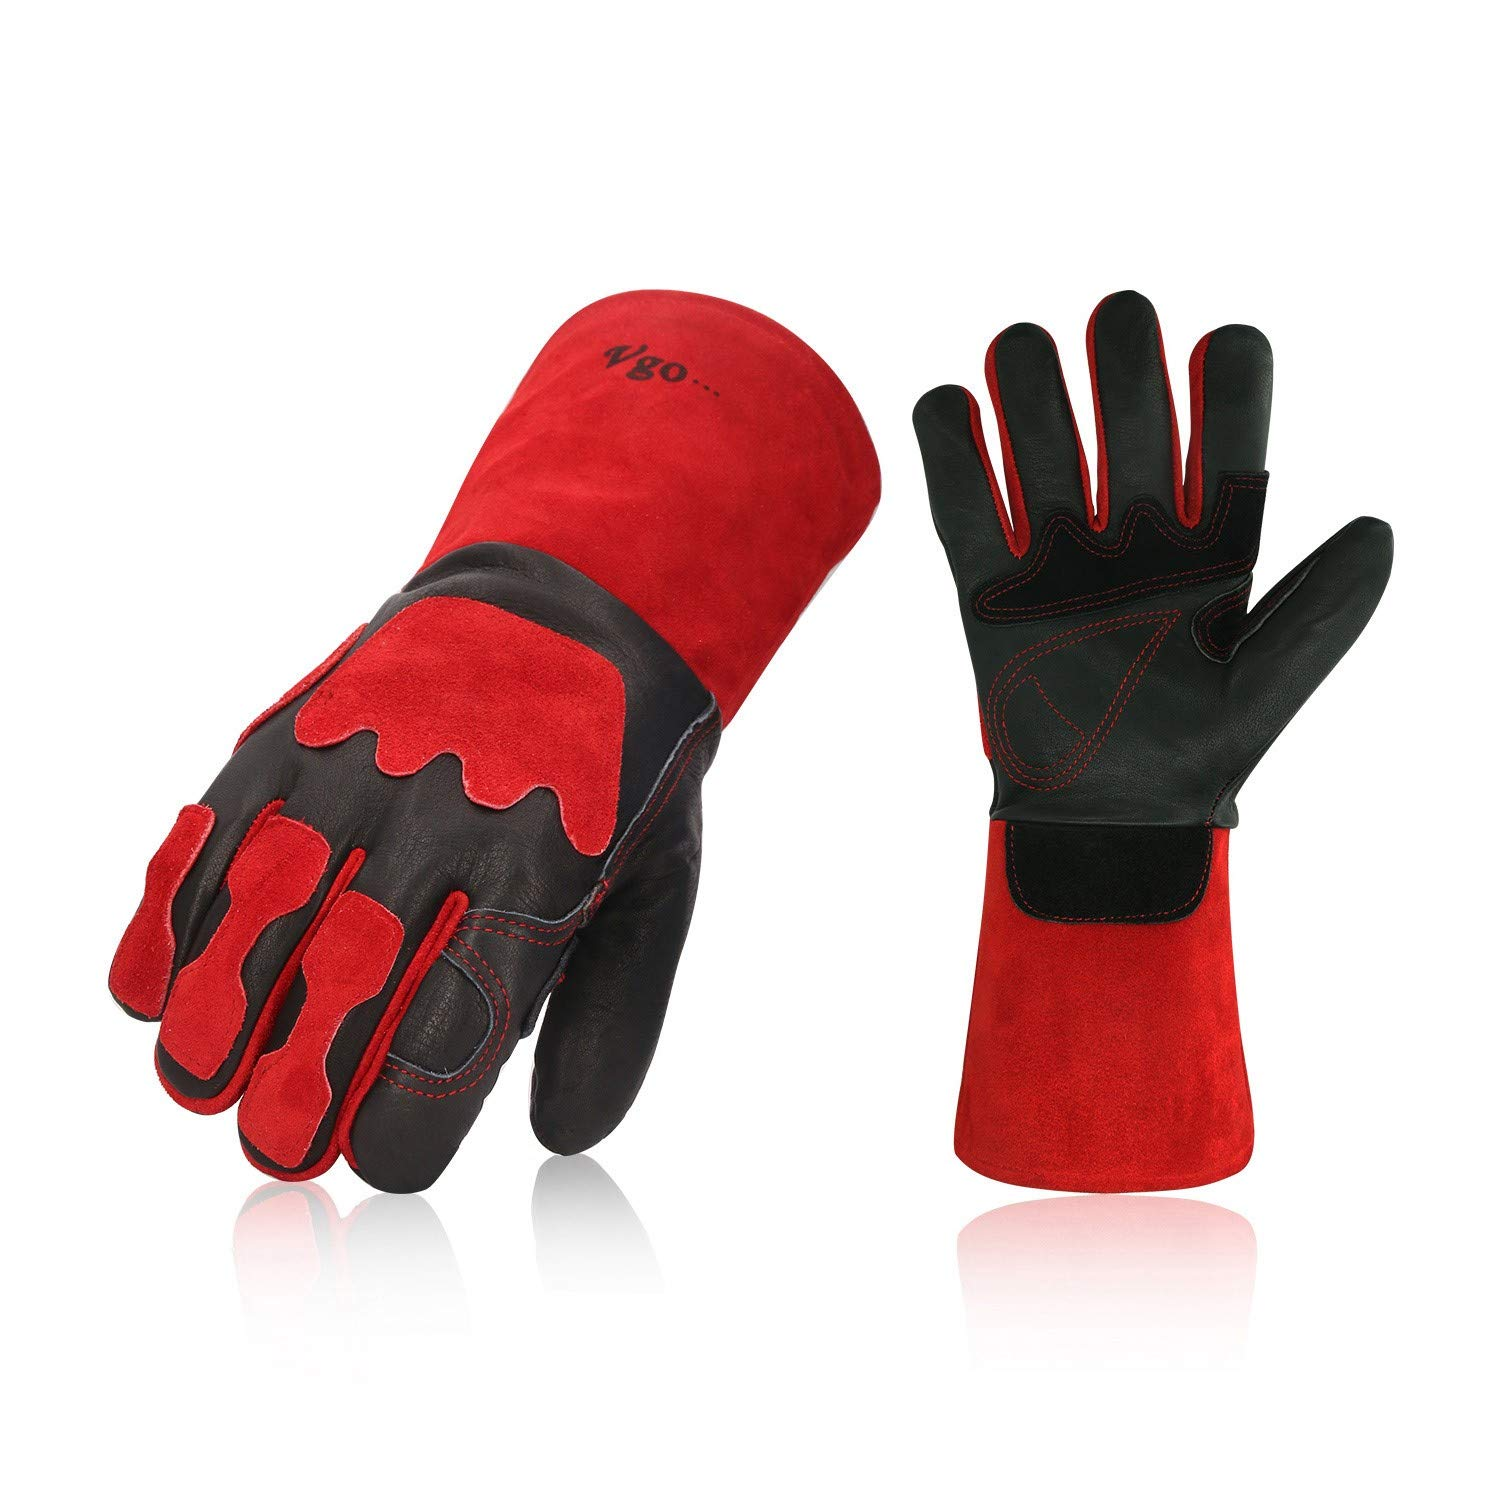 Vgo 2Pairs Premium Cow Grain Leather Welding Gloves For Oven, Grill, Fireplace, Stove, Pot Holder, Tig Welder, Mig, BBQ (Red, 13.5in, CA6637)